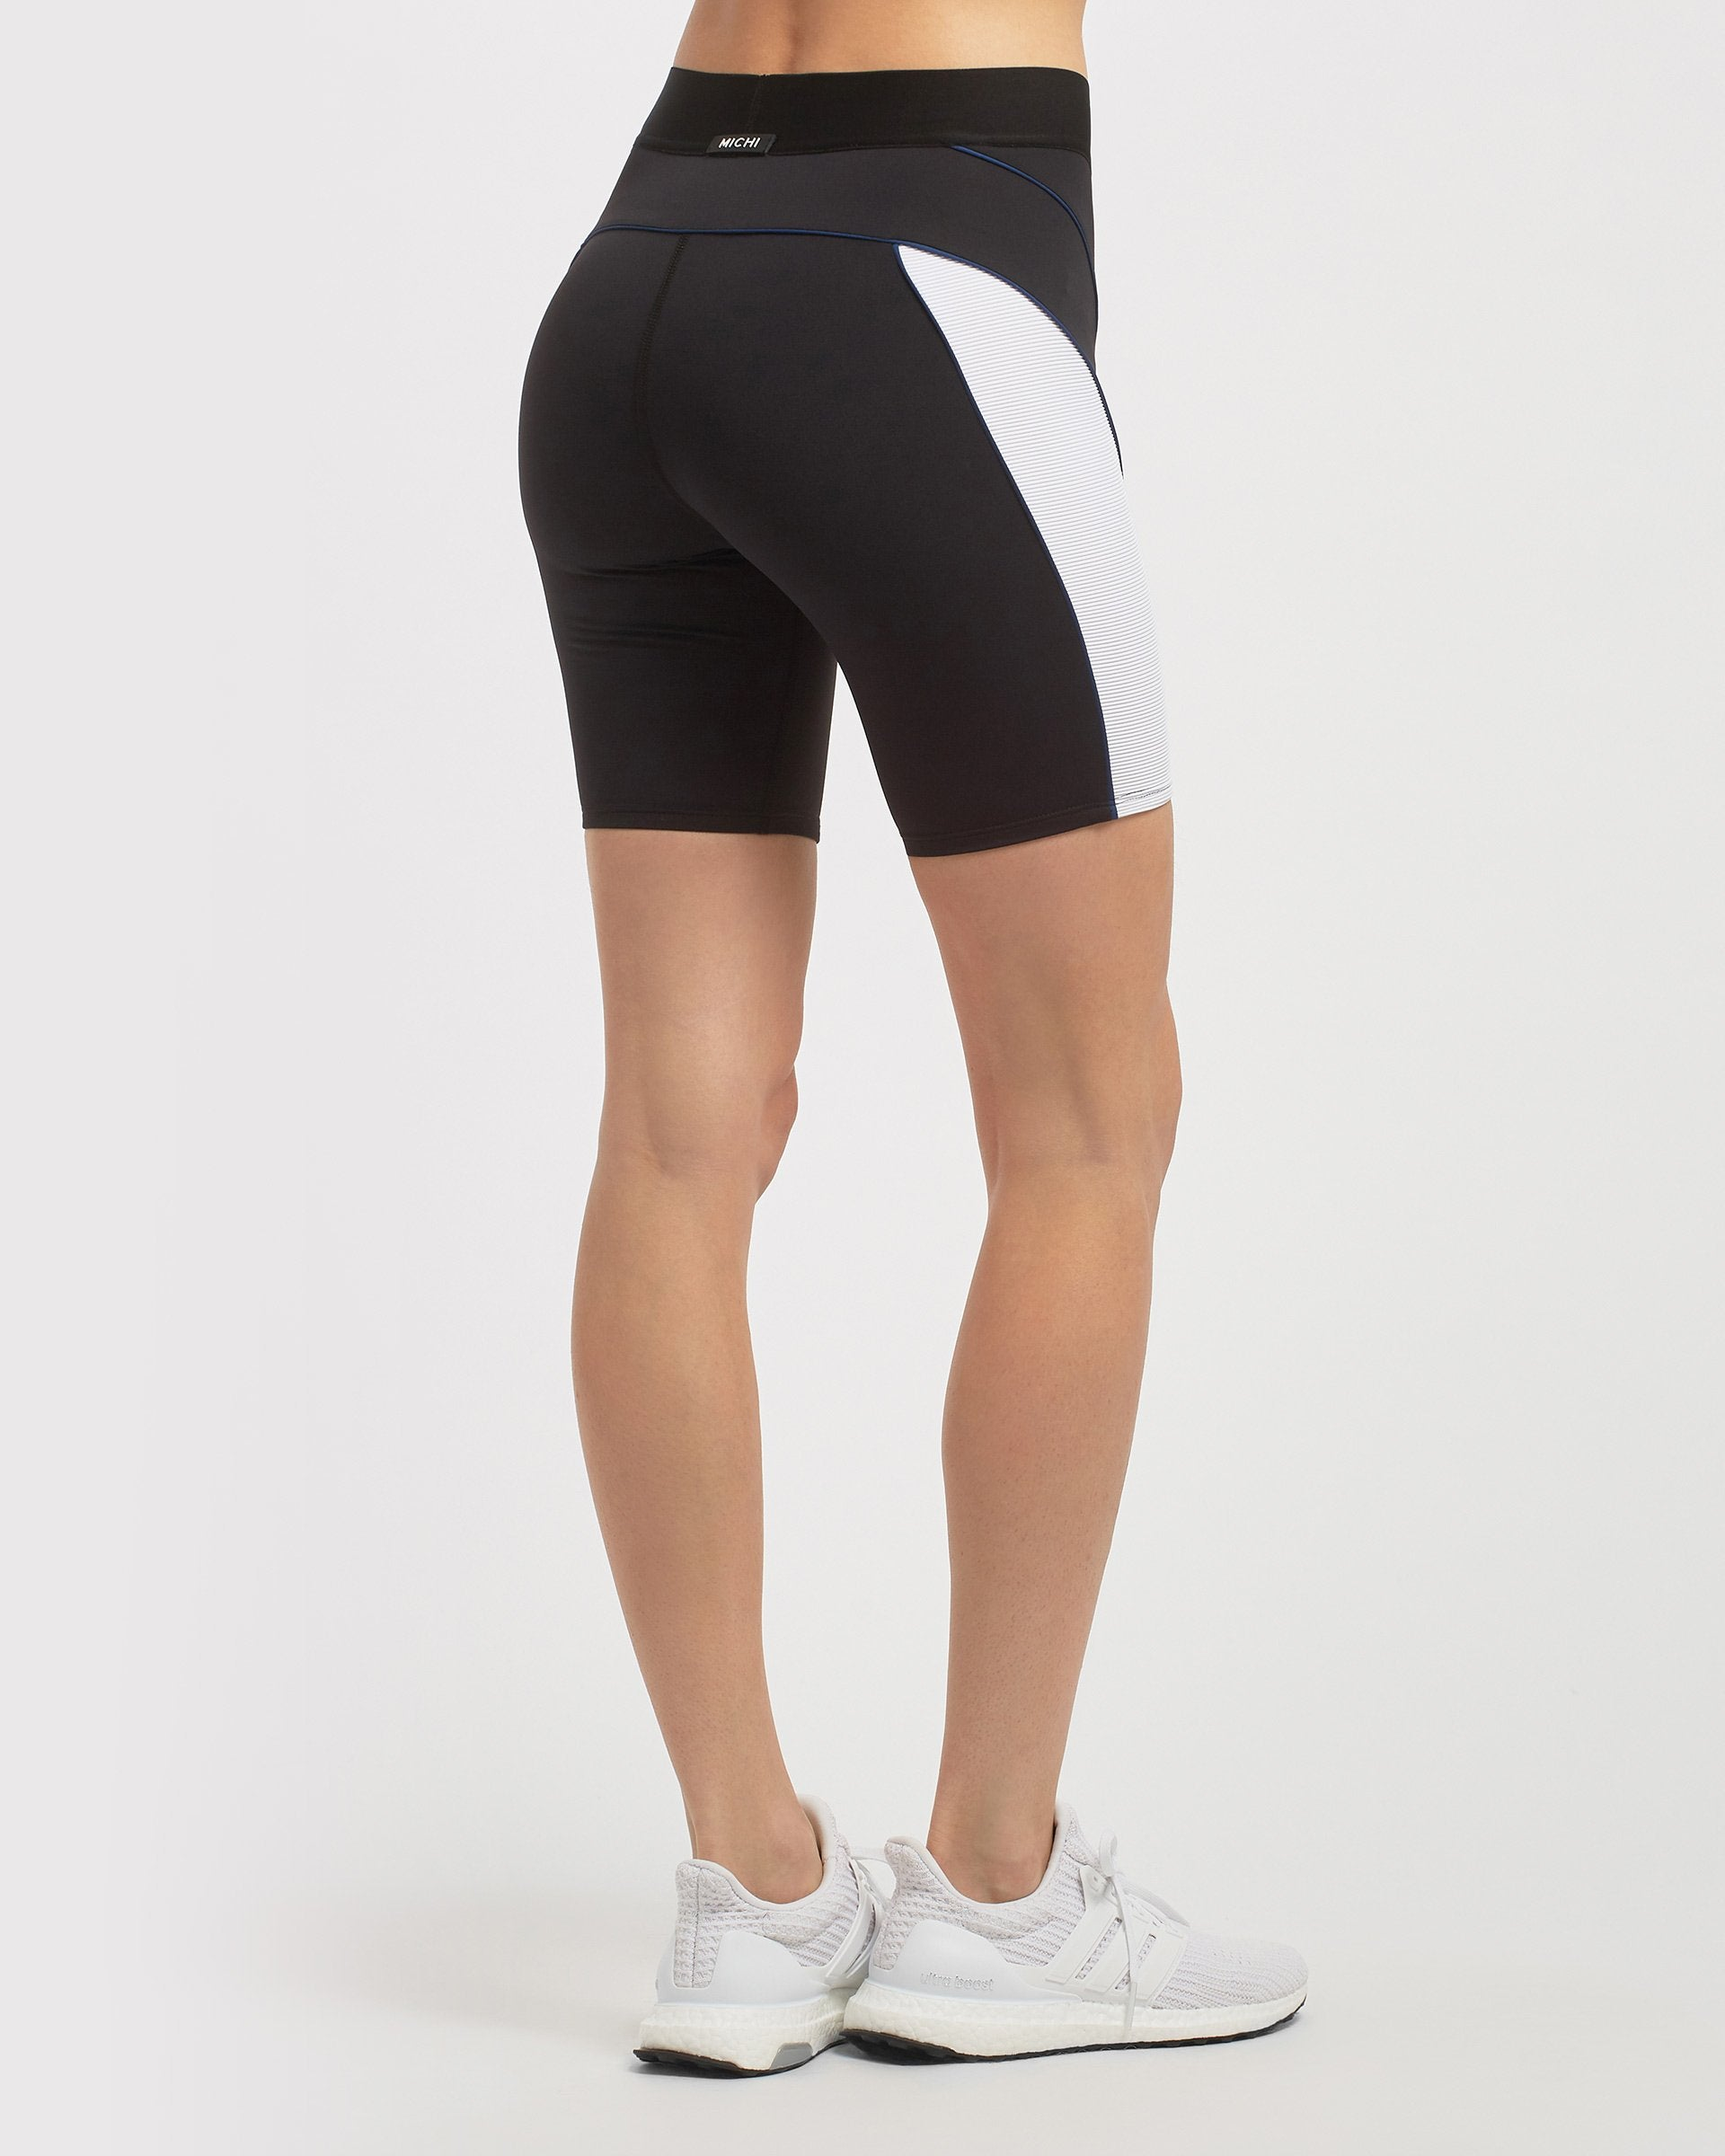 Vortex Bike Short - Black/White/Adriatic Blue